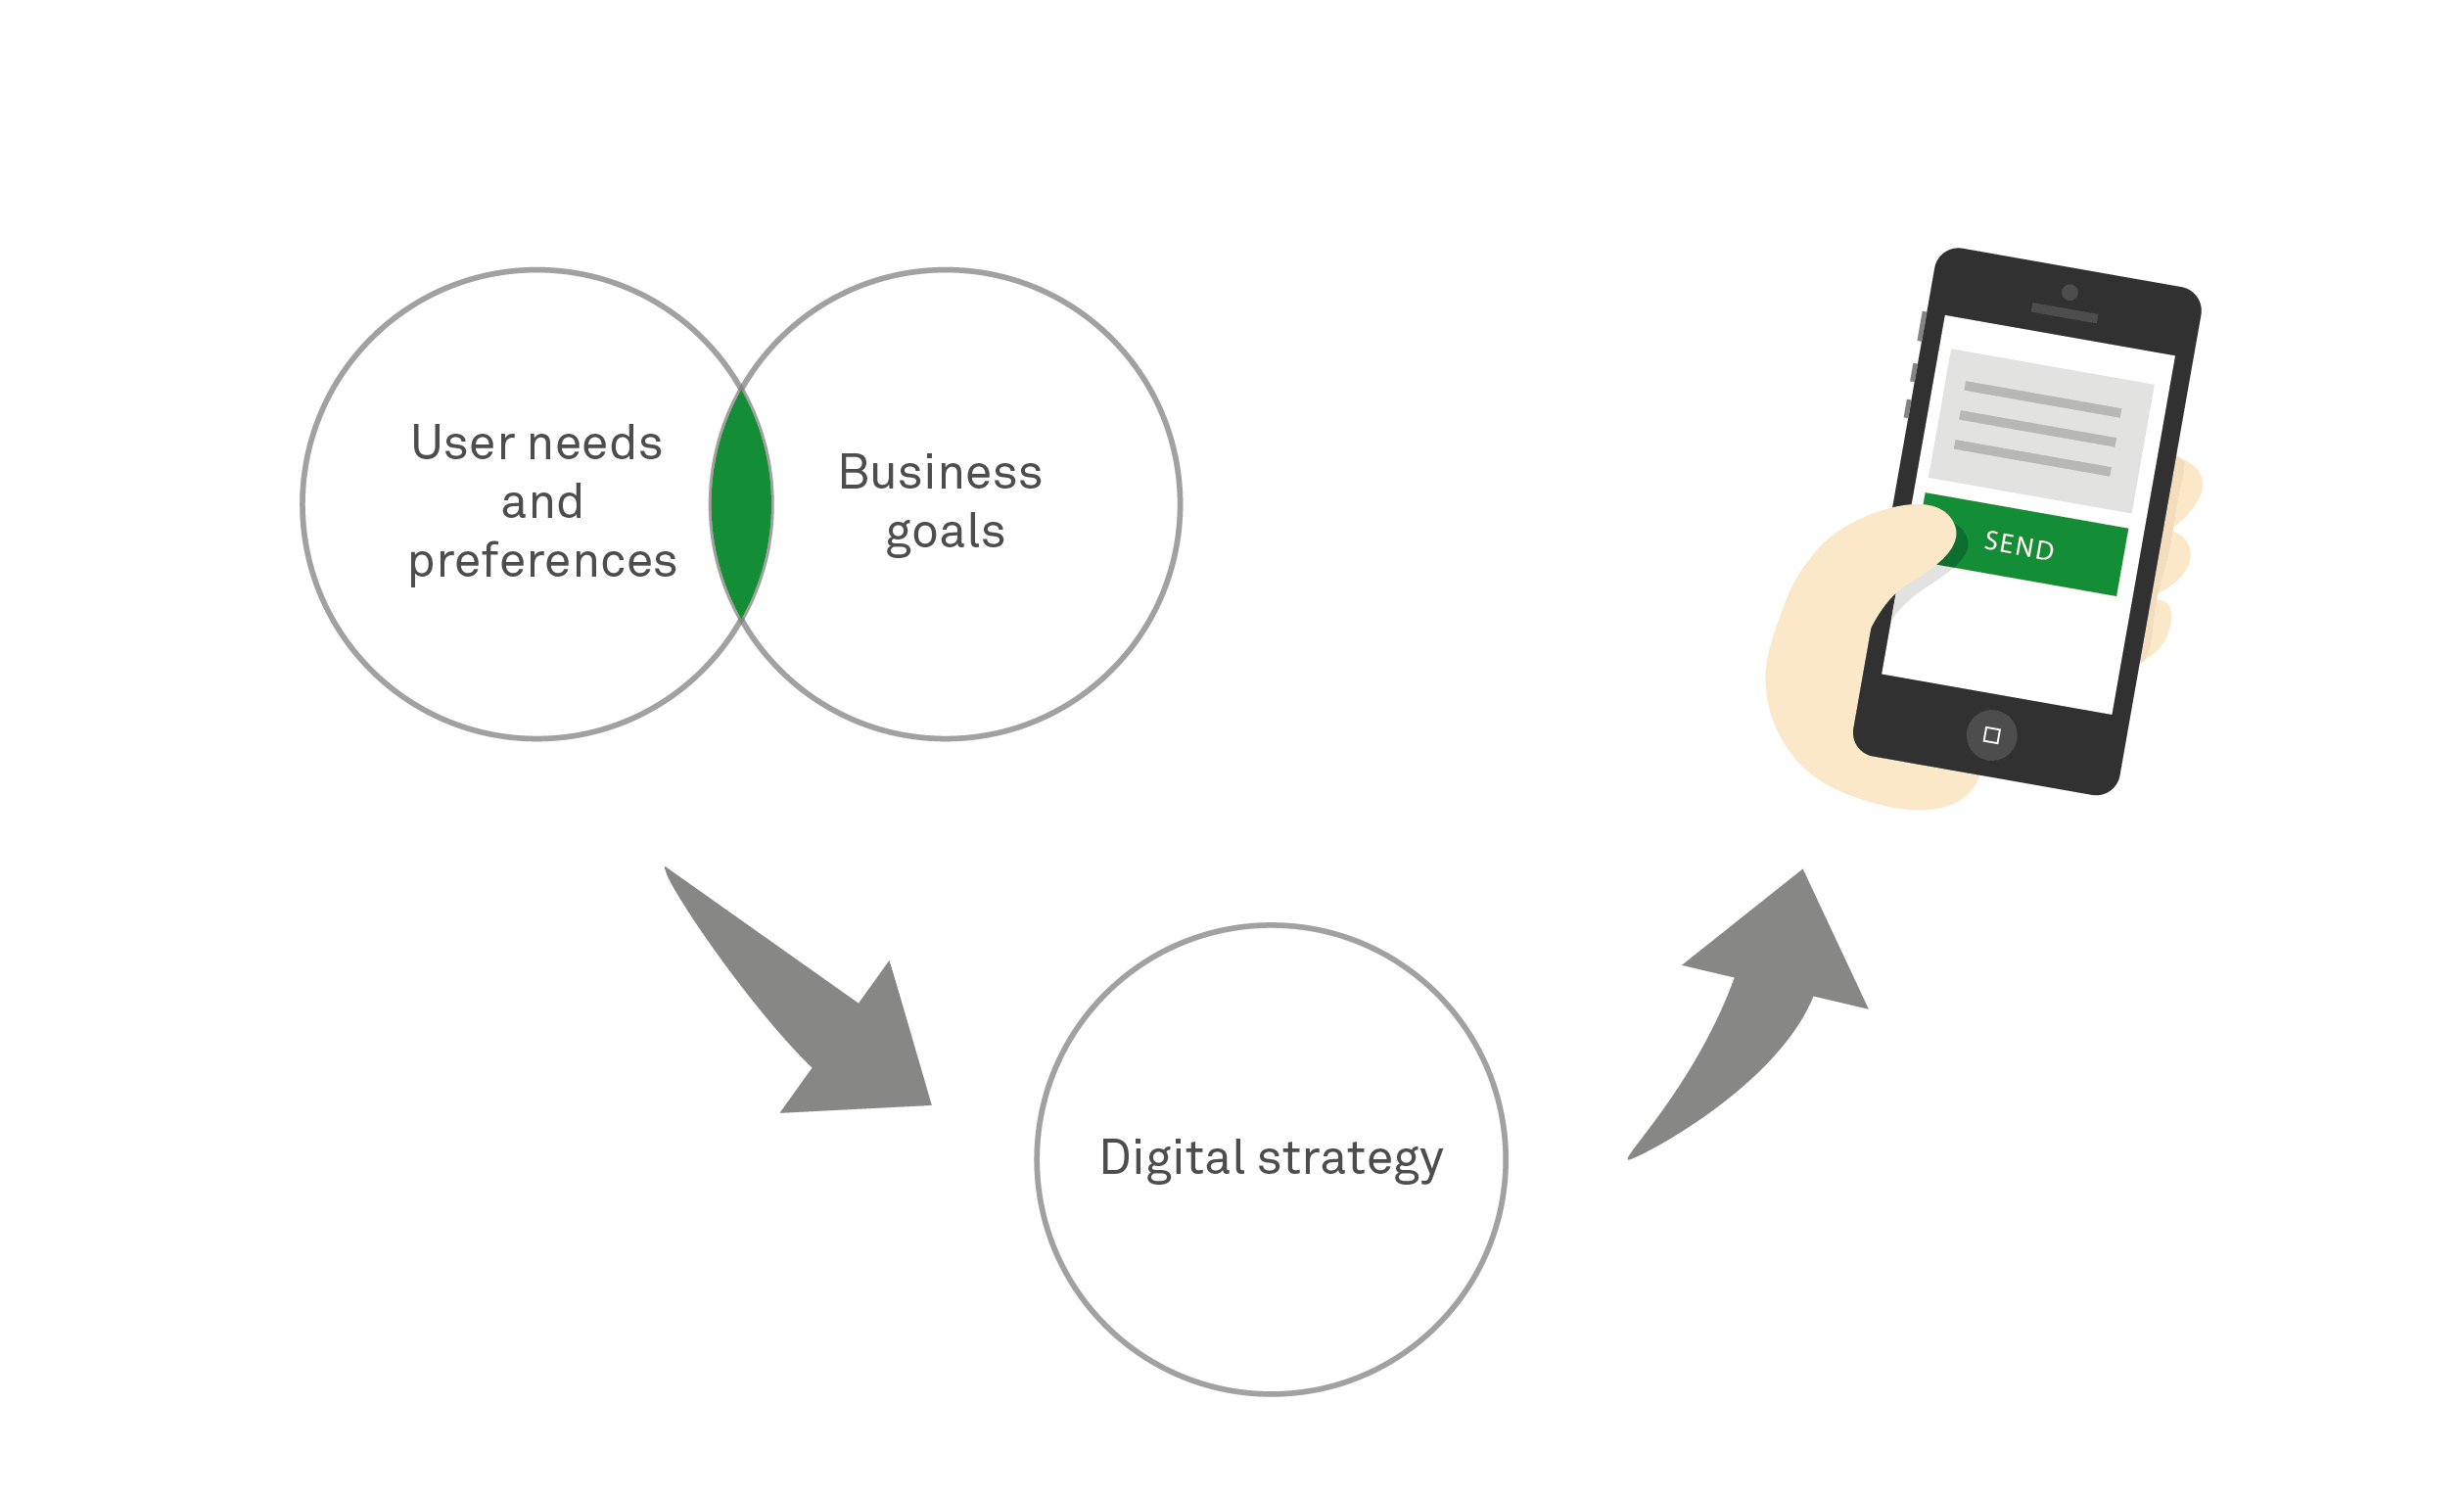 A digital strategy